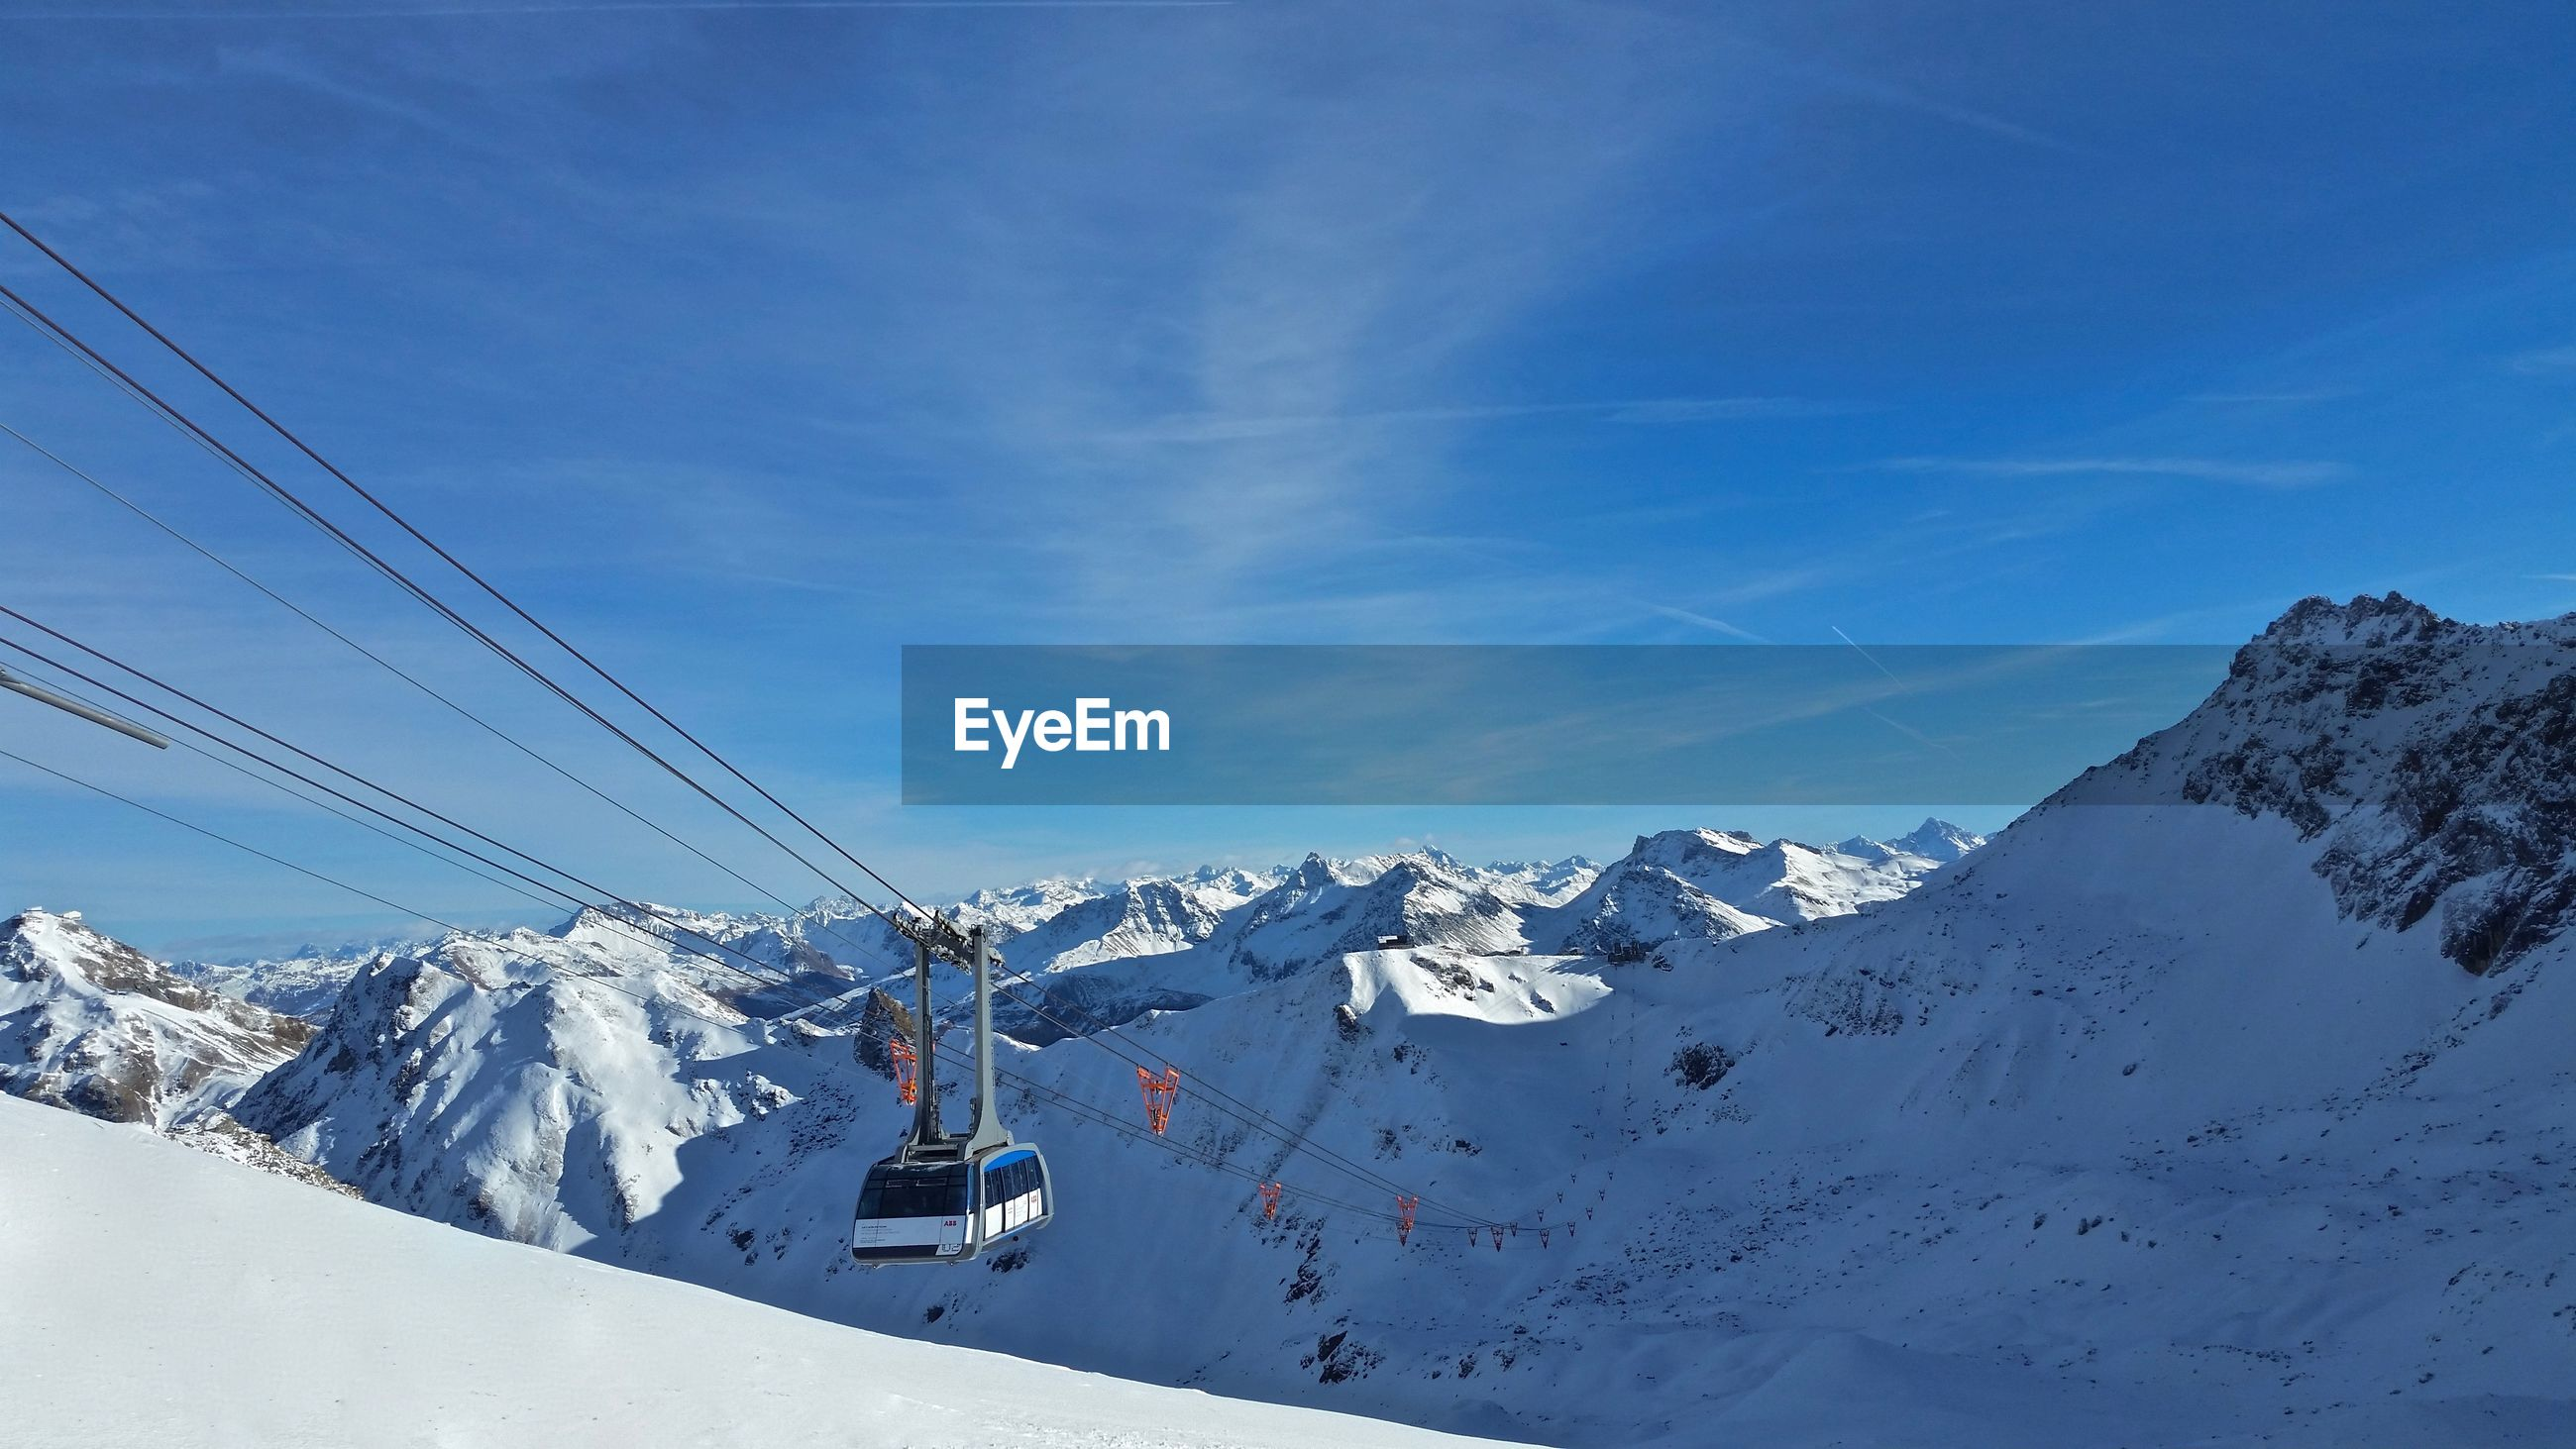 Ski lift over snowcapped mountains against blue sky